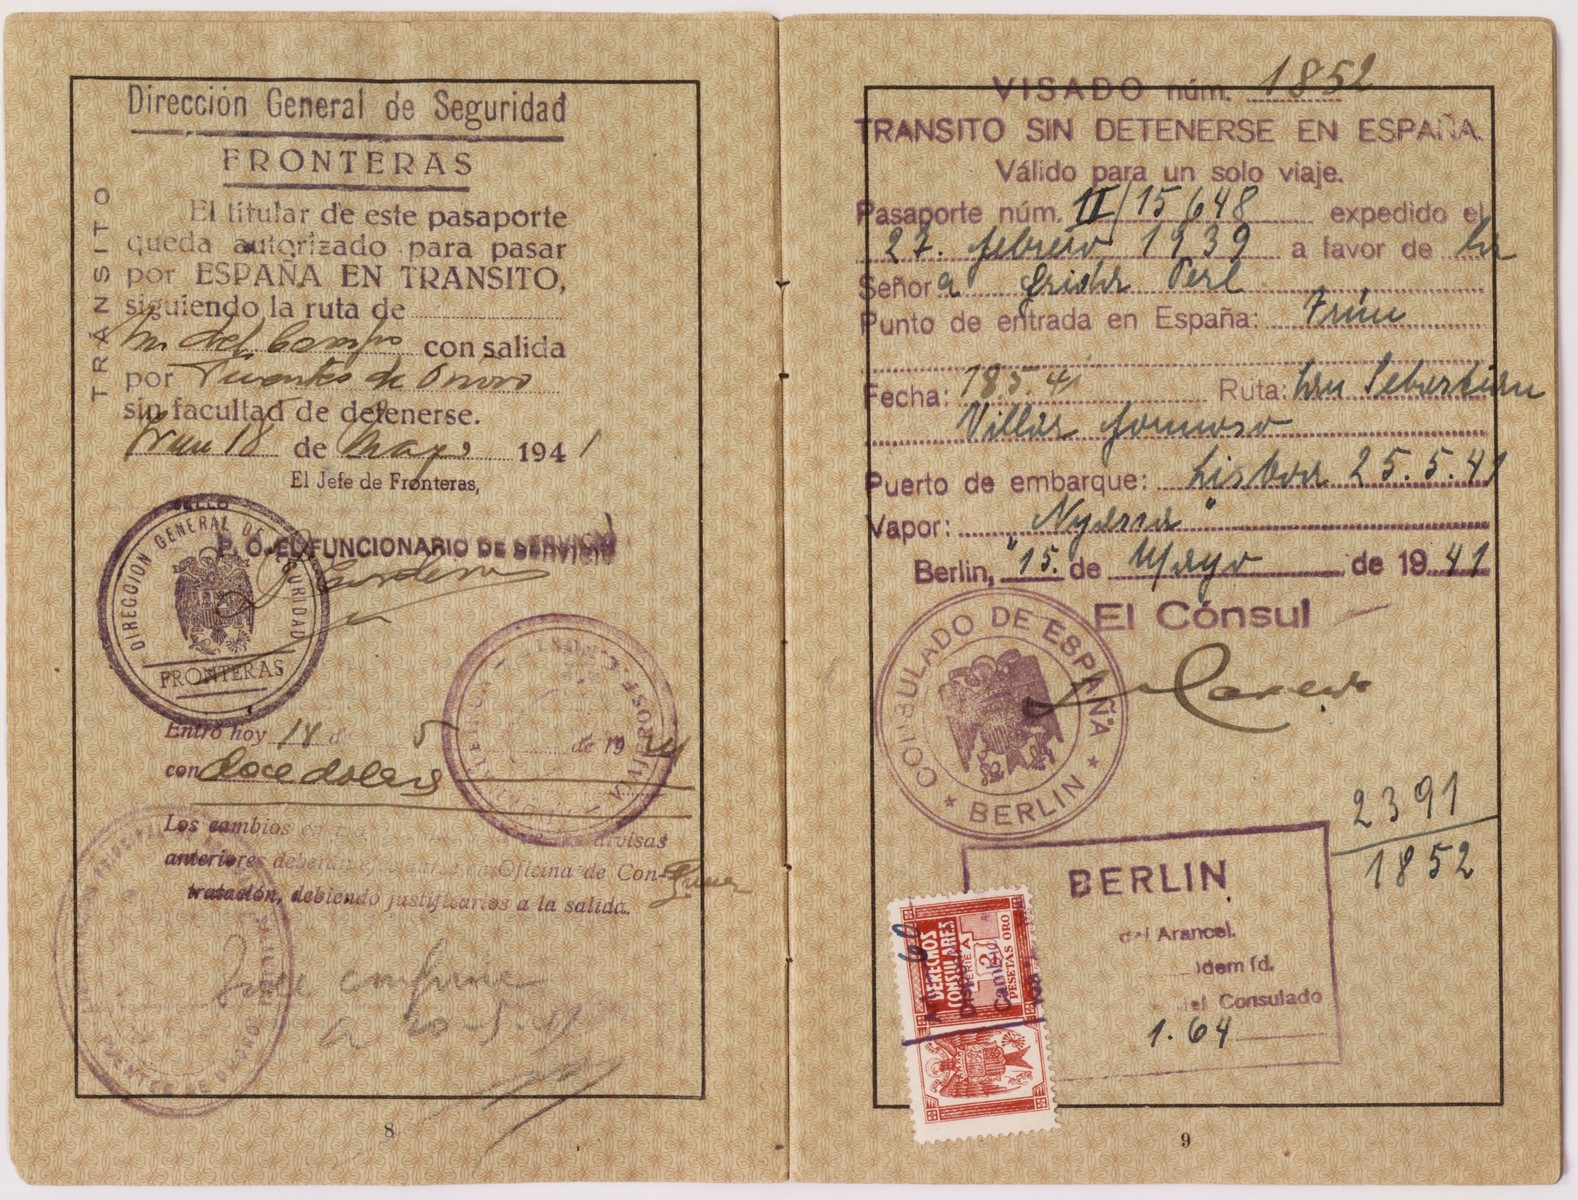 """Passport issued to Frida Felicie Perl in February, 1939.  It is stamped with a red """"J"""" and includes the middle name Sara in order to identify the owner as Jewish.  Ernst used this passport to flee Germany and eventually make his way to the United States.  Ellinor (now Eleanor) and Evelyn Perl, twin sisters, were born in Berlin in 1938 to Ernst and Frieda (nee Heimann) Perl.  The family fled to Lisbon via Paris and succeeded in sailing to the United States on board the SS Nyassa on May 25, 1941.  They settled in New York where the girls attended a pre-school for Jewish refugee children."""